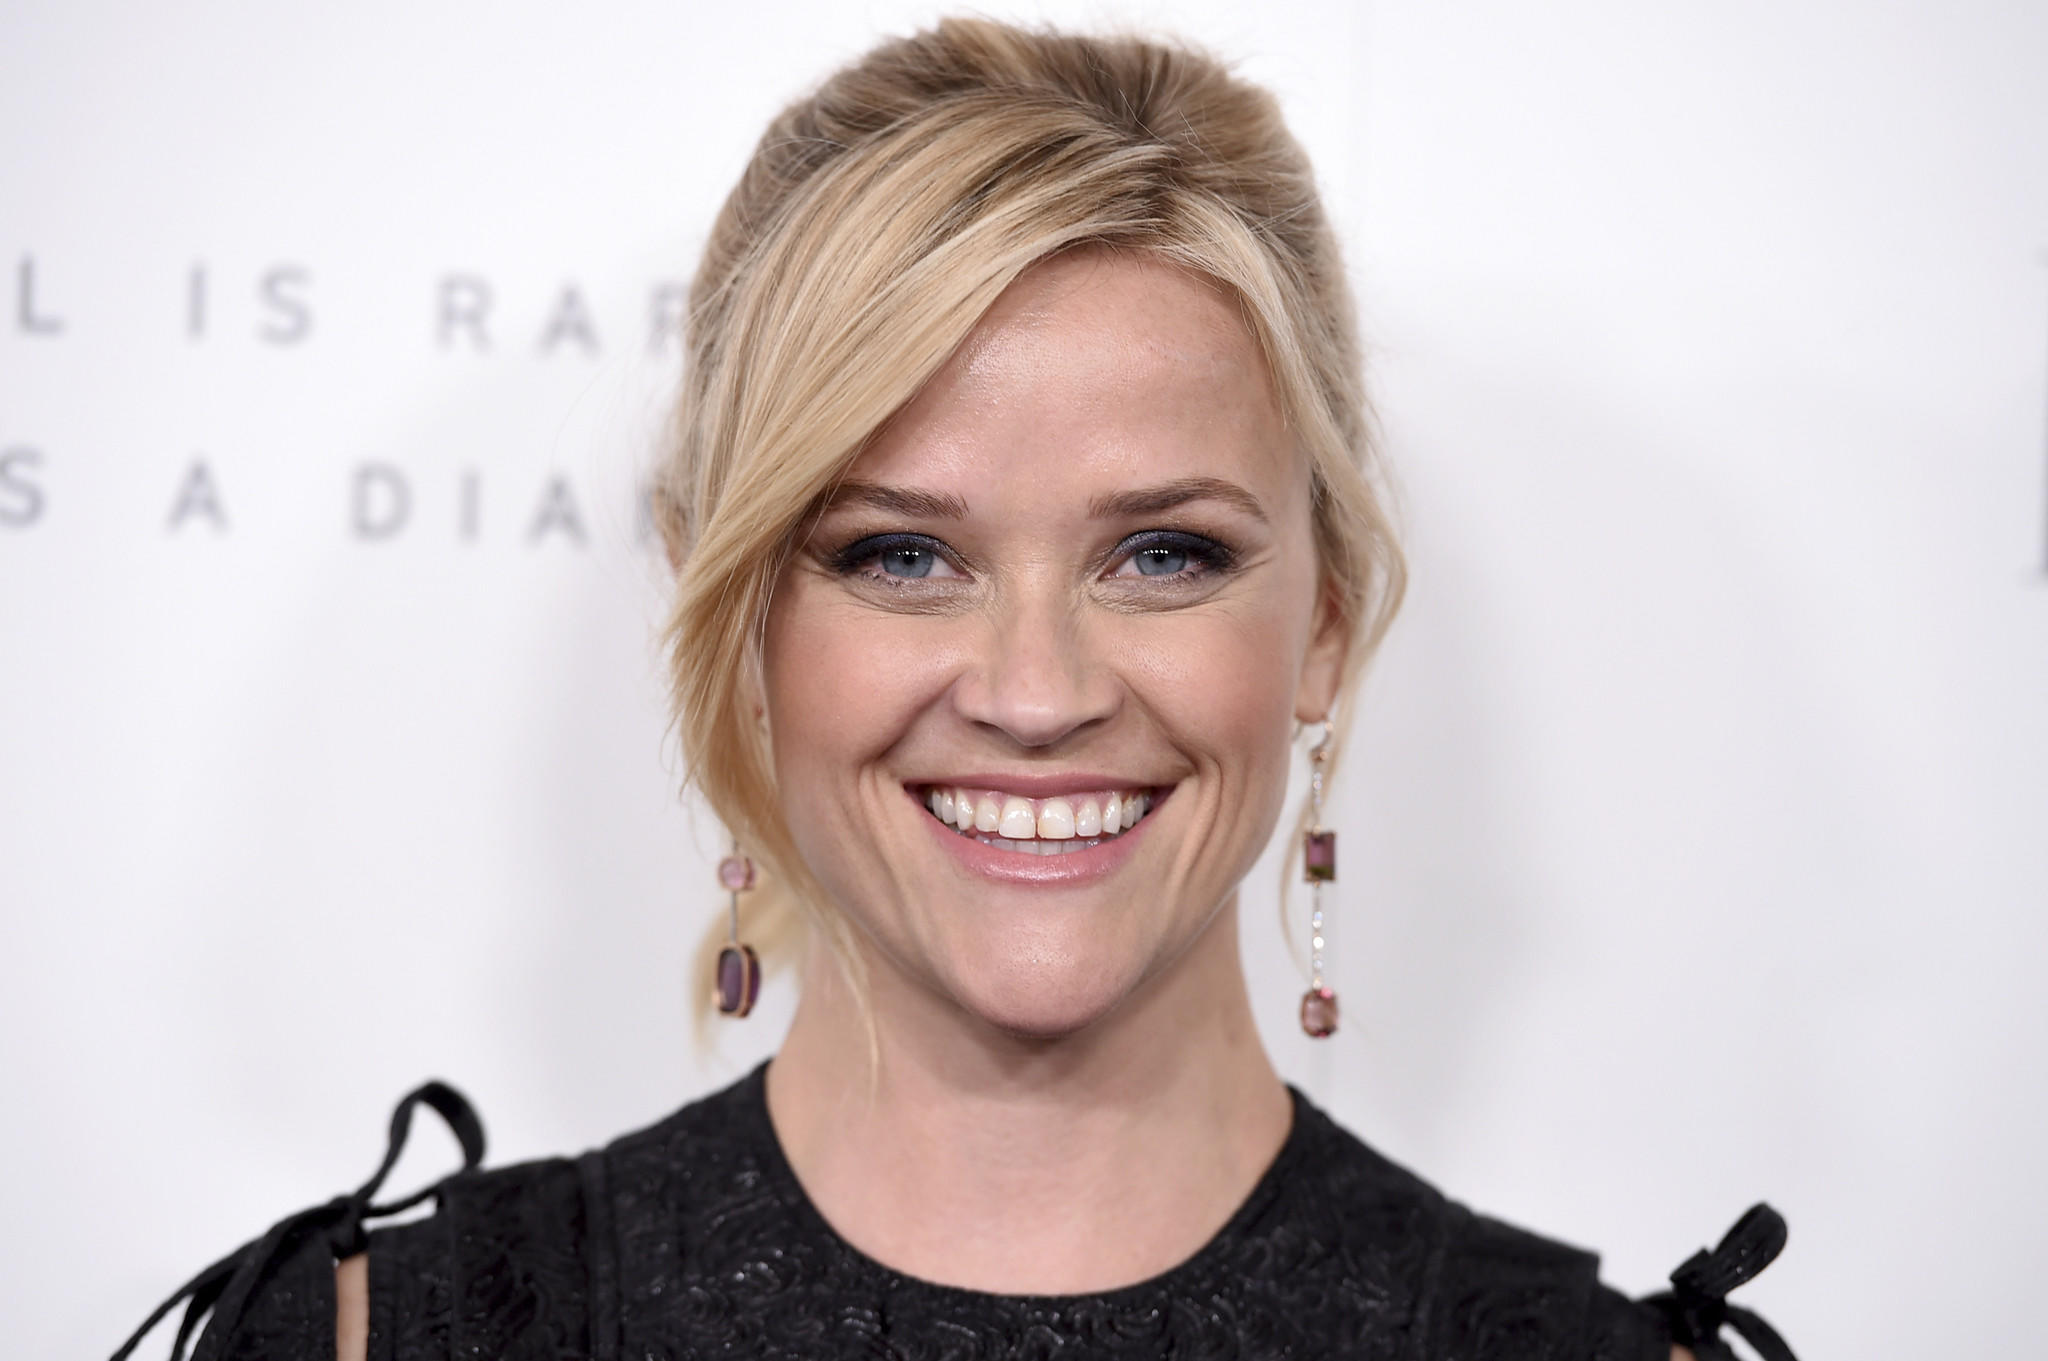 reese witherspoon arrives at the elle women in hollywood awards at the four seasons hotel beverly